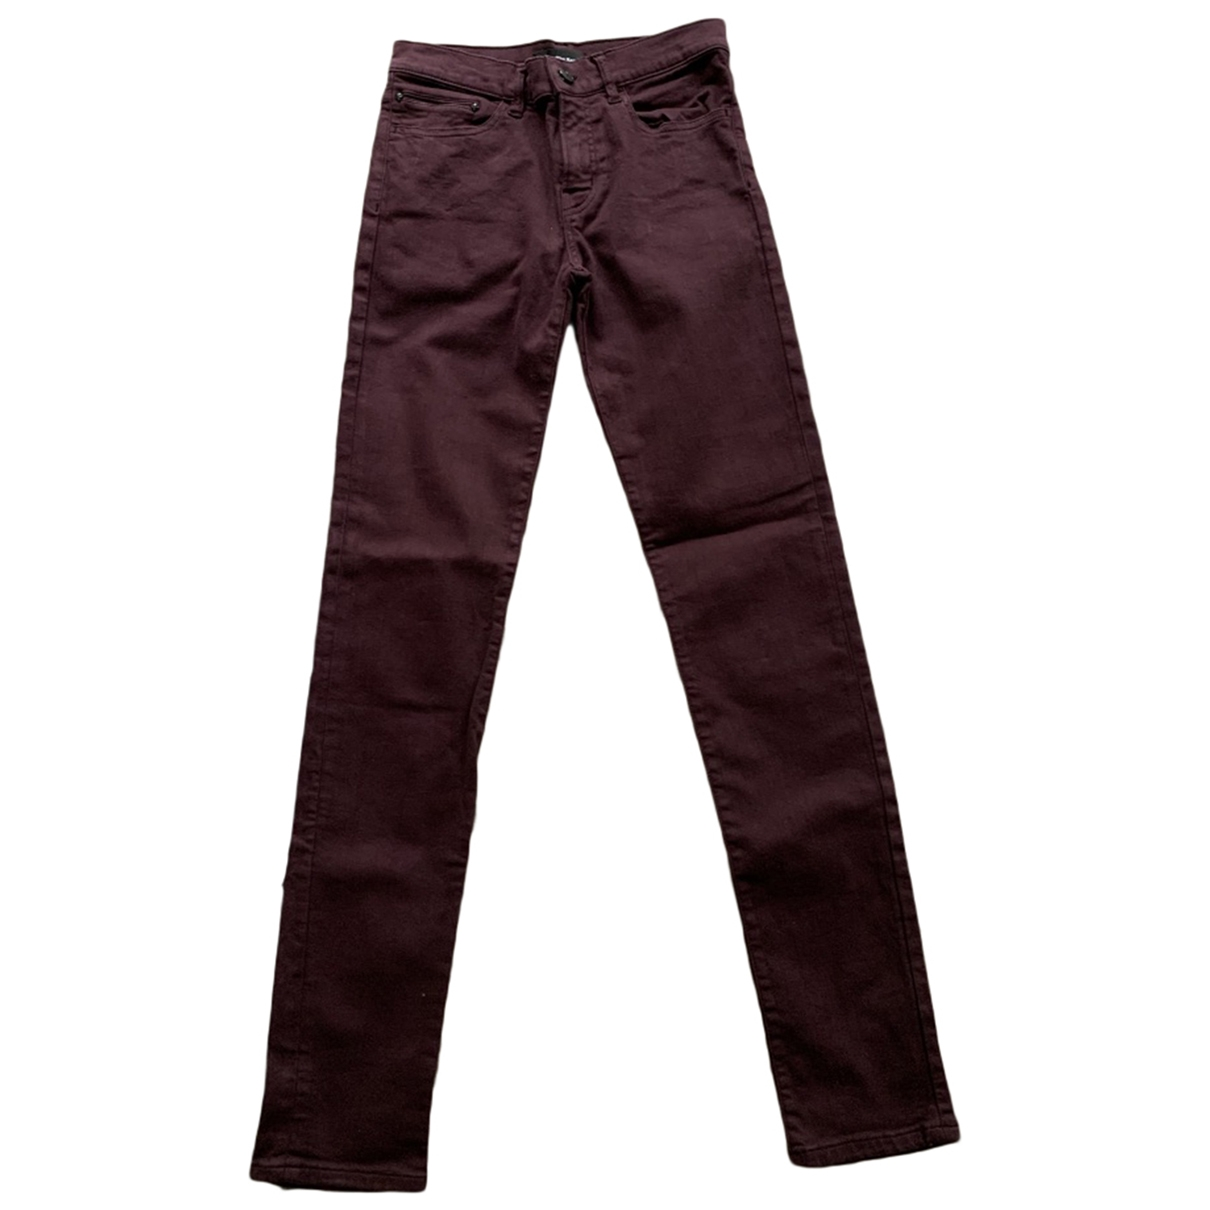 The Kooples \N Burgundy Cotton - elasthane Jeans for Women 24 US